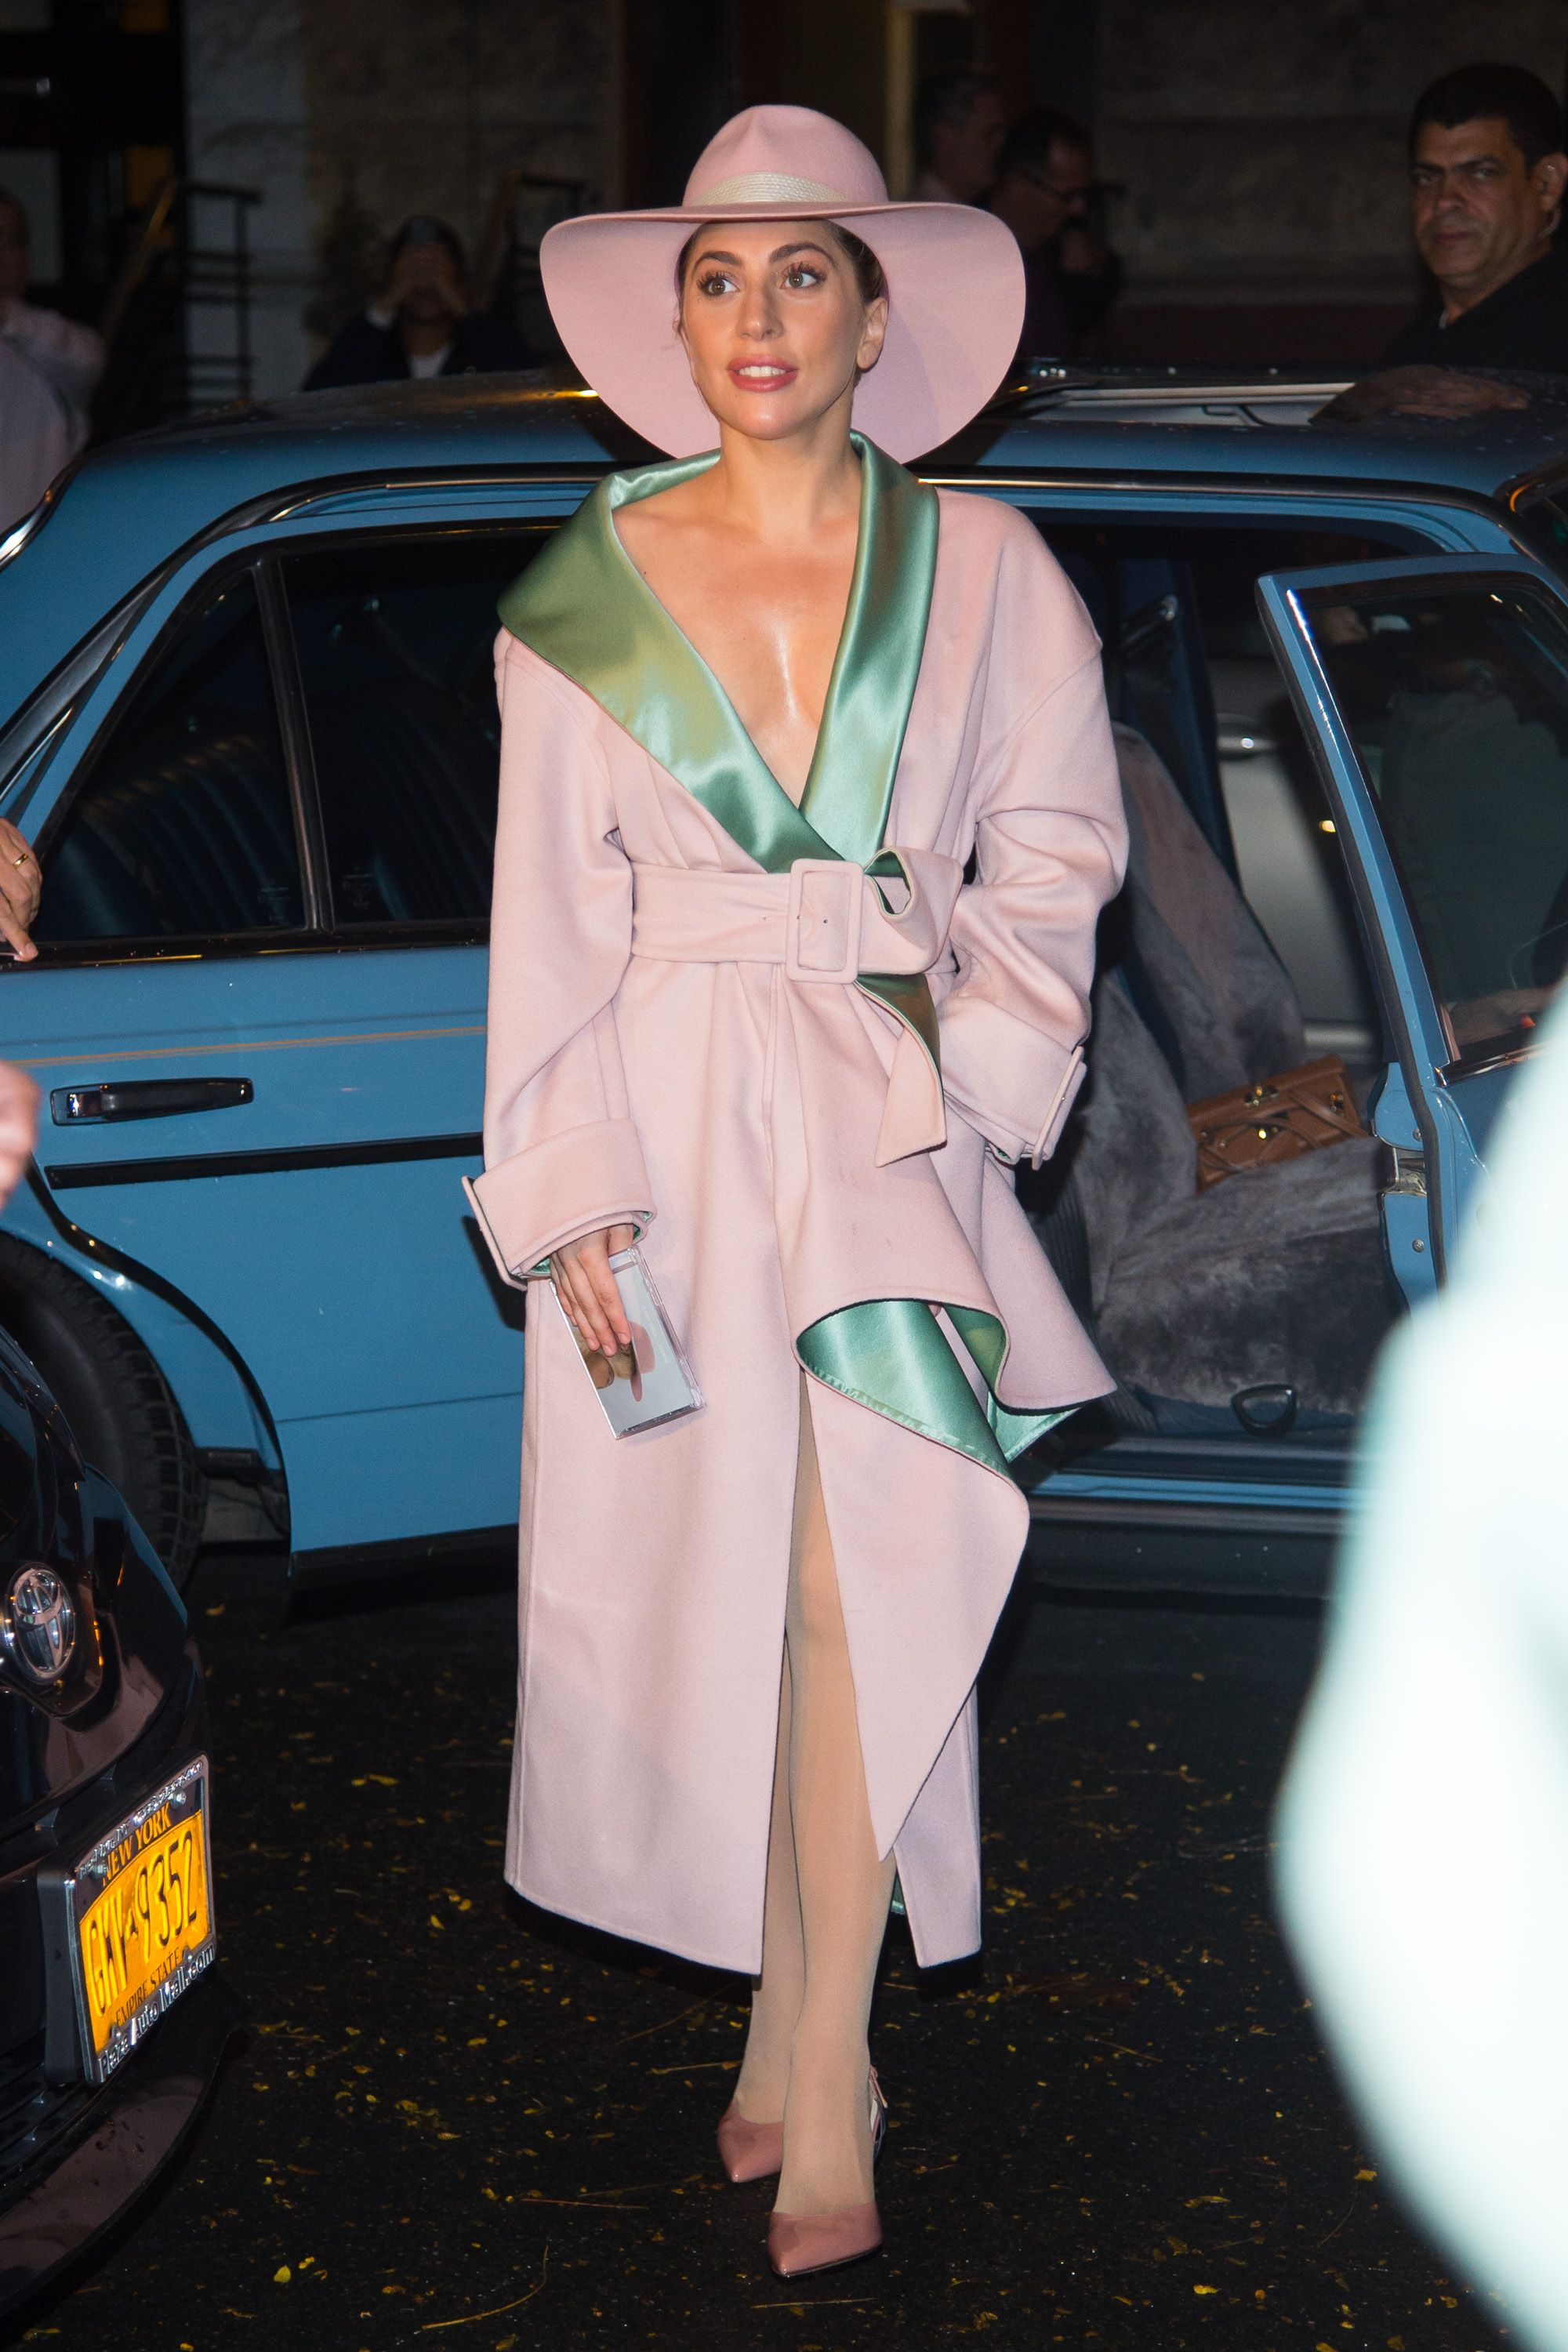 Google themes lady gaga - Lady Gaga Was A Vision Wearing An Atelierversace Pink Cashmere Coat With Sage Green Satin